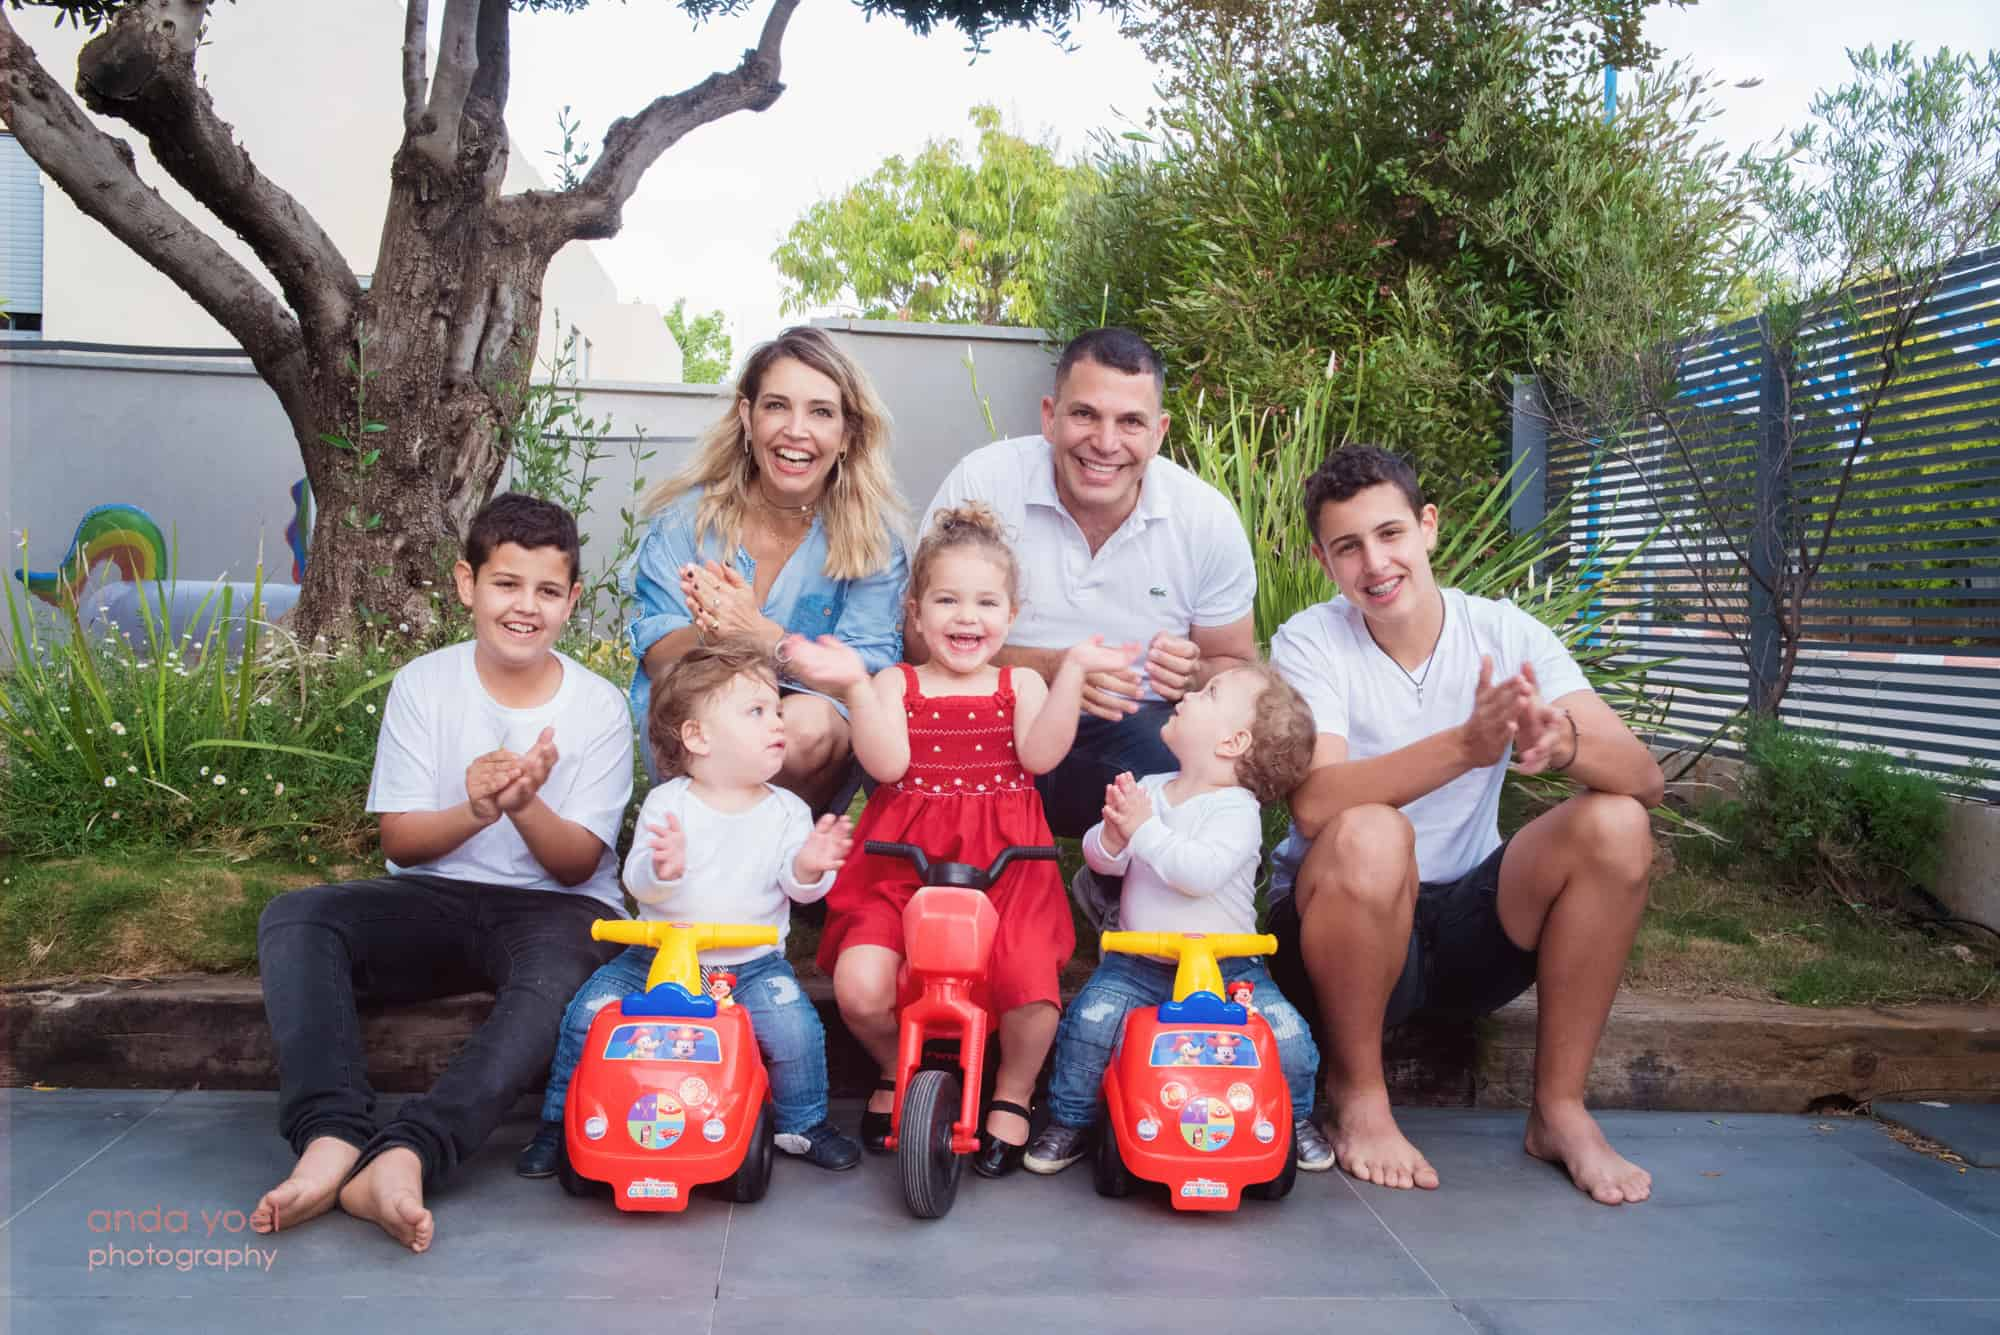 Family session in Israel (at home)- Anda Yoel